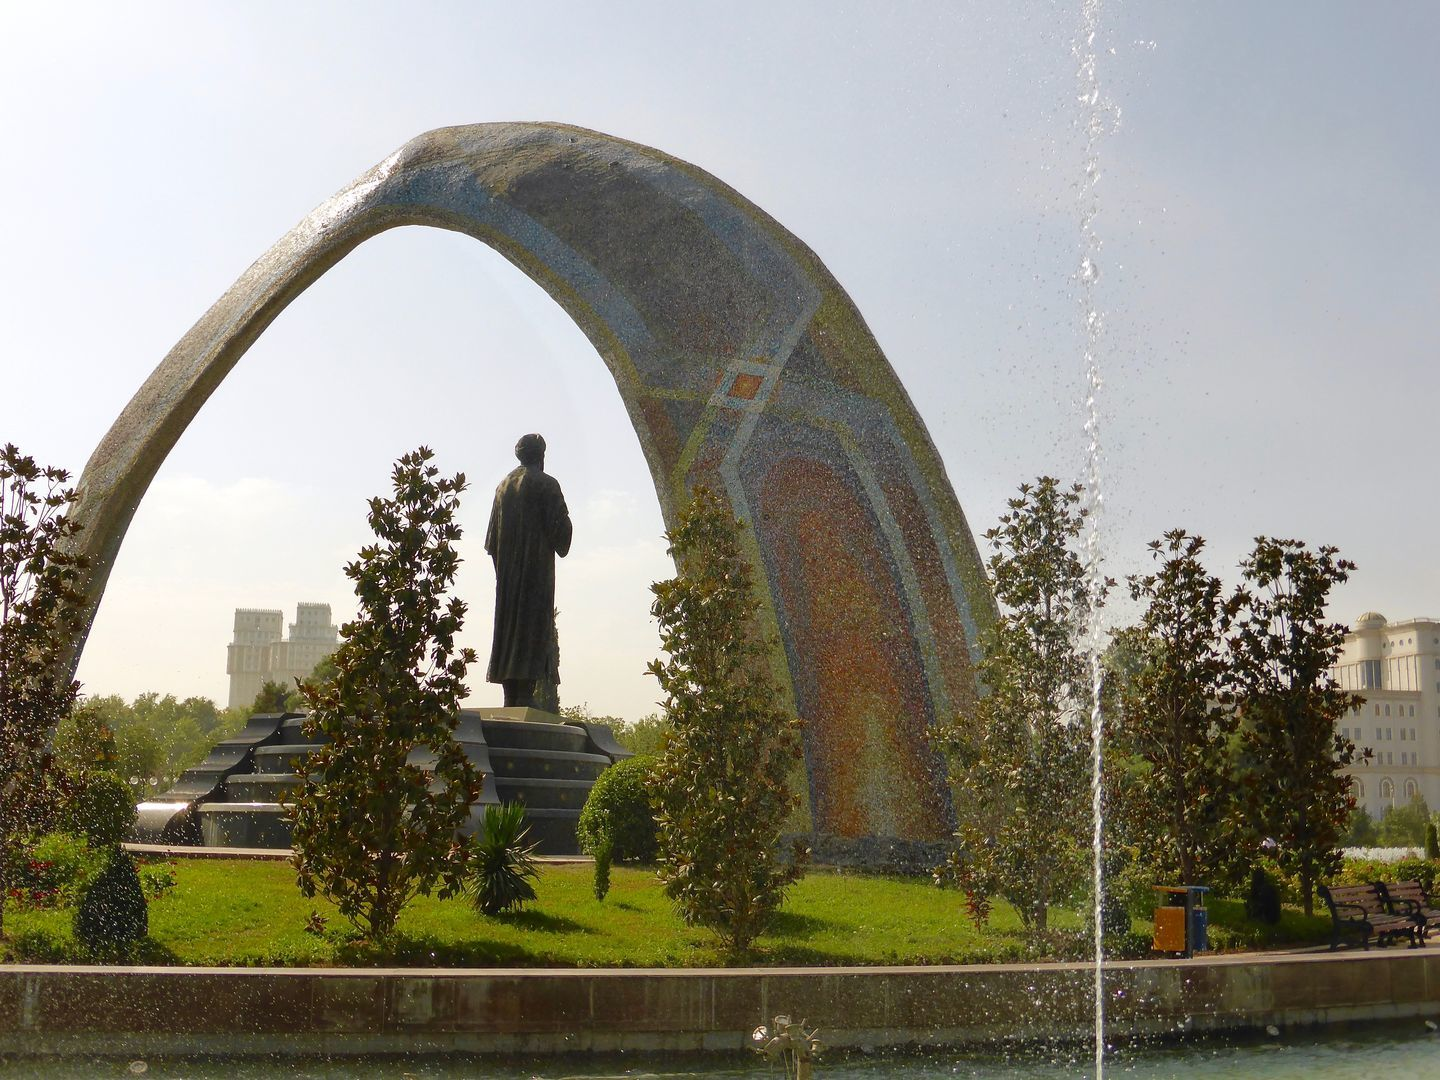 Rudaki Park in Dushanbe, favorite place of local population & highlight of tourism in tajikistan, central asia